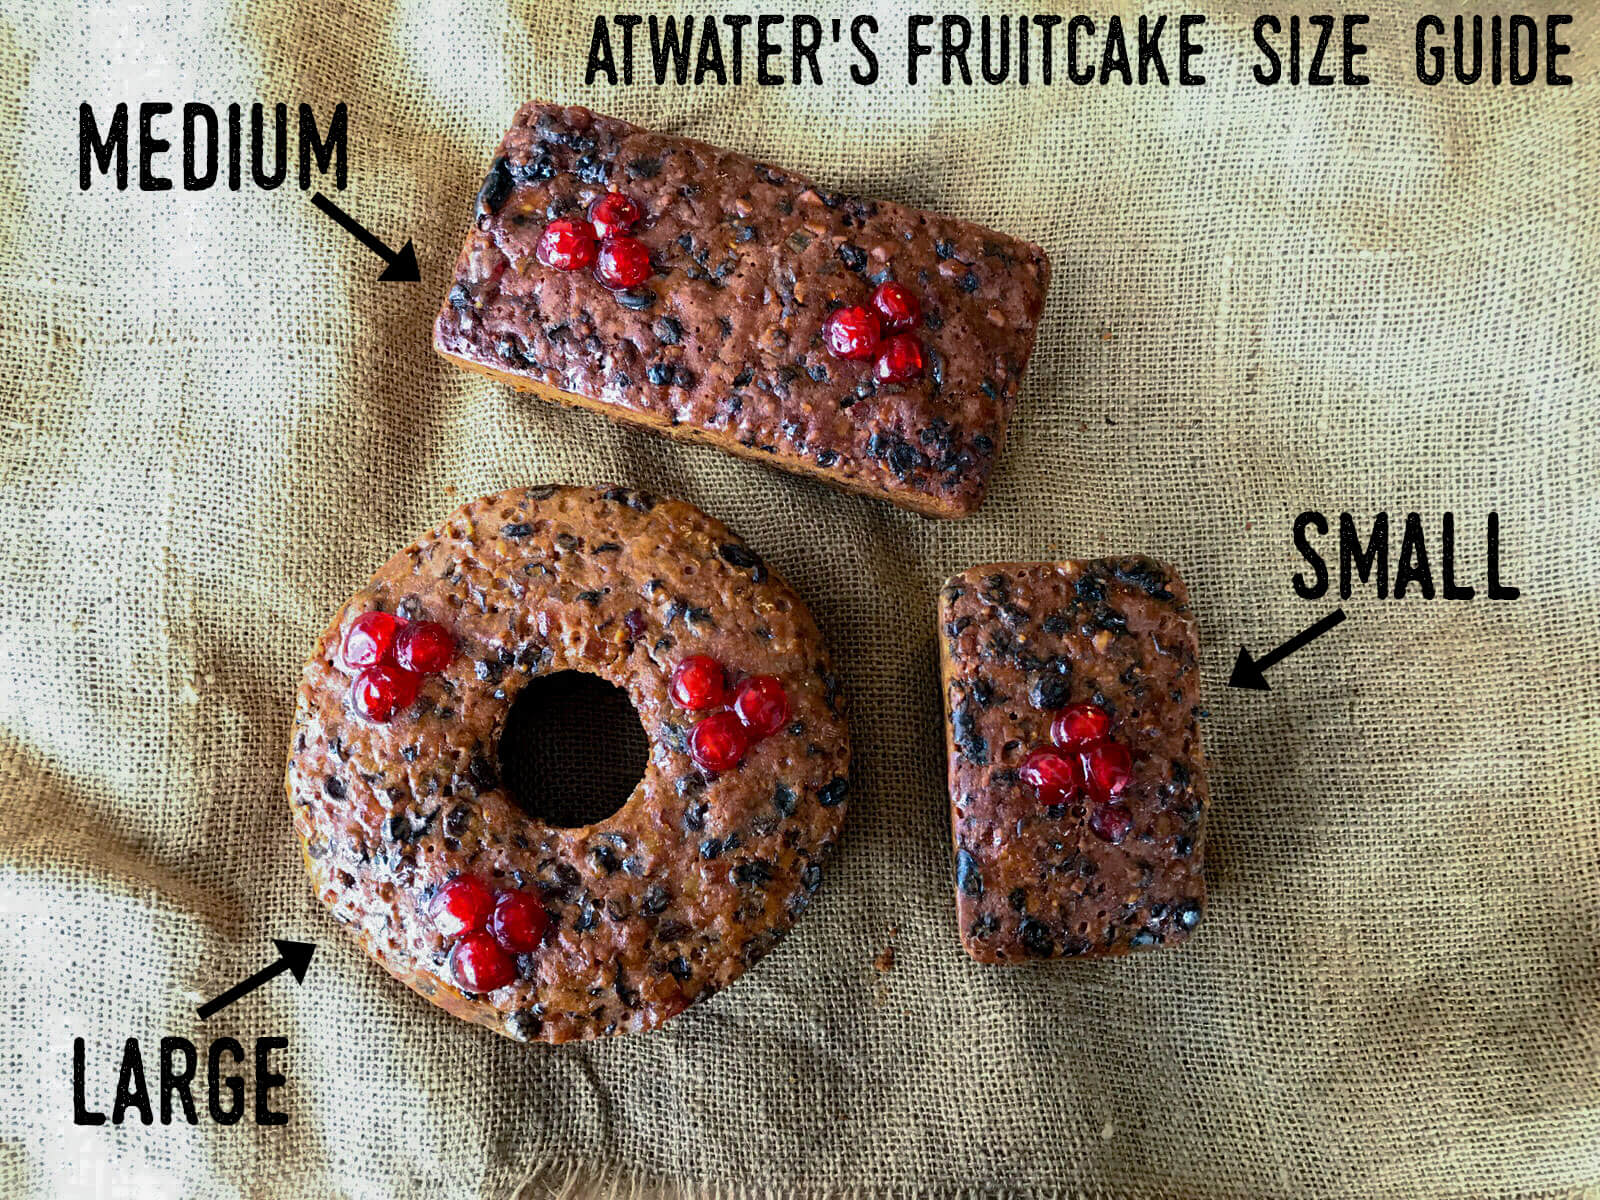 Our fruitcake comes in 3 sizes. We recommend the large size for yourself and the smaller sizes for loved ones. ;)